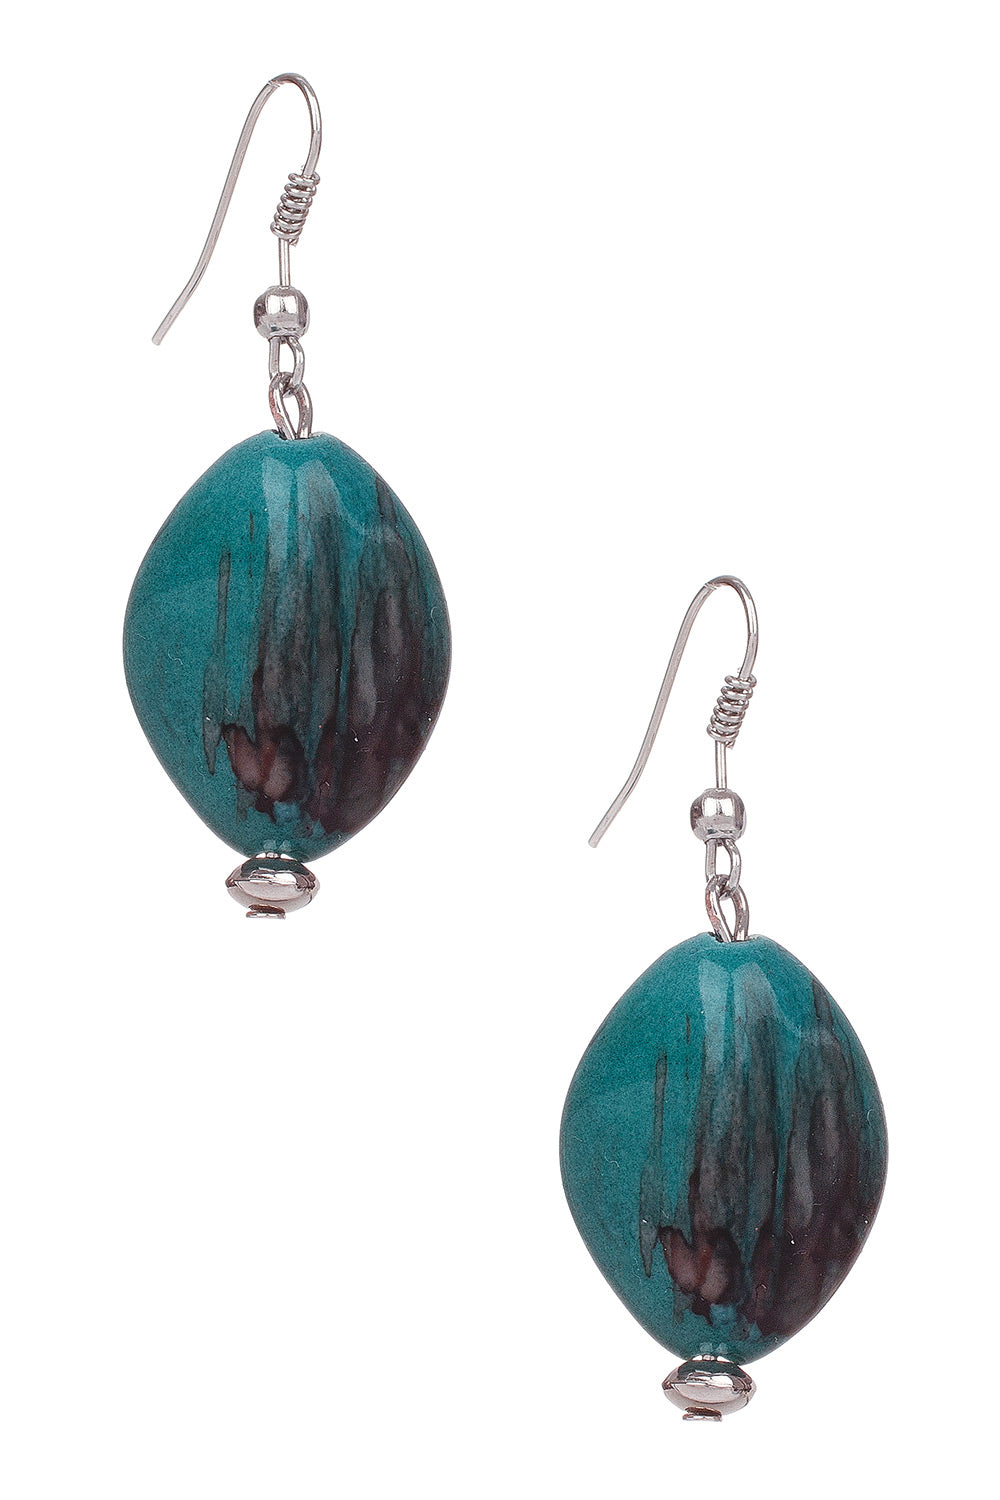 Type 2 River Stones Earrings